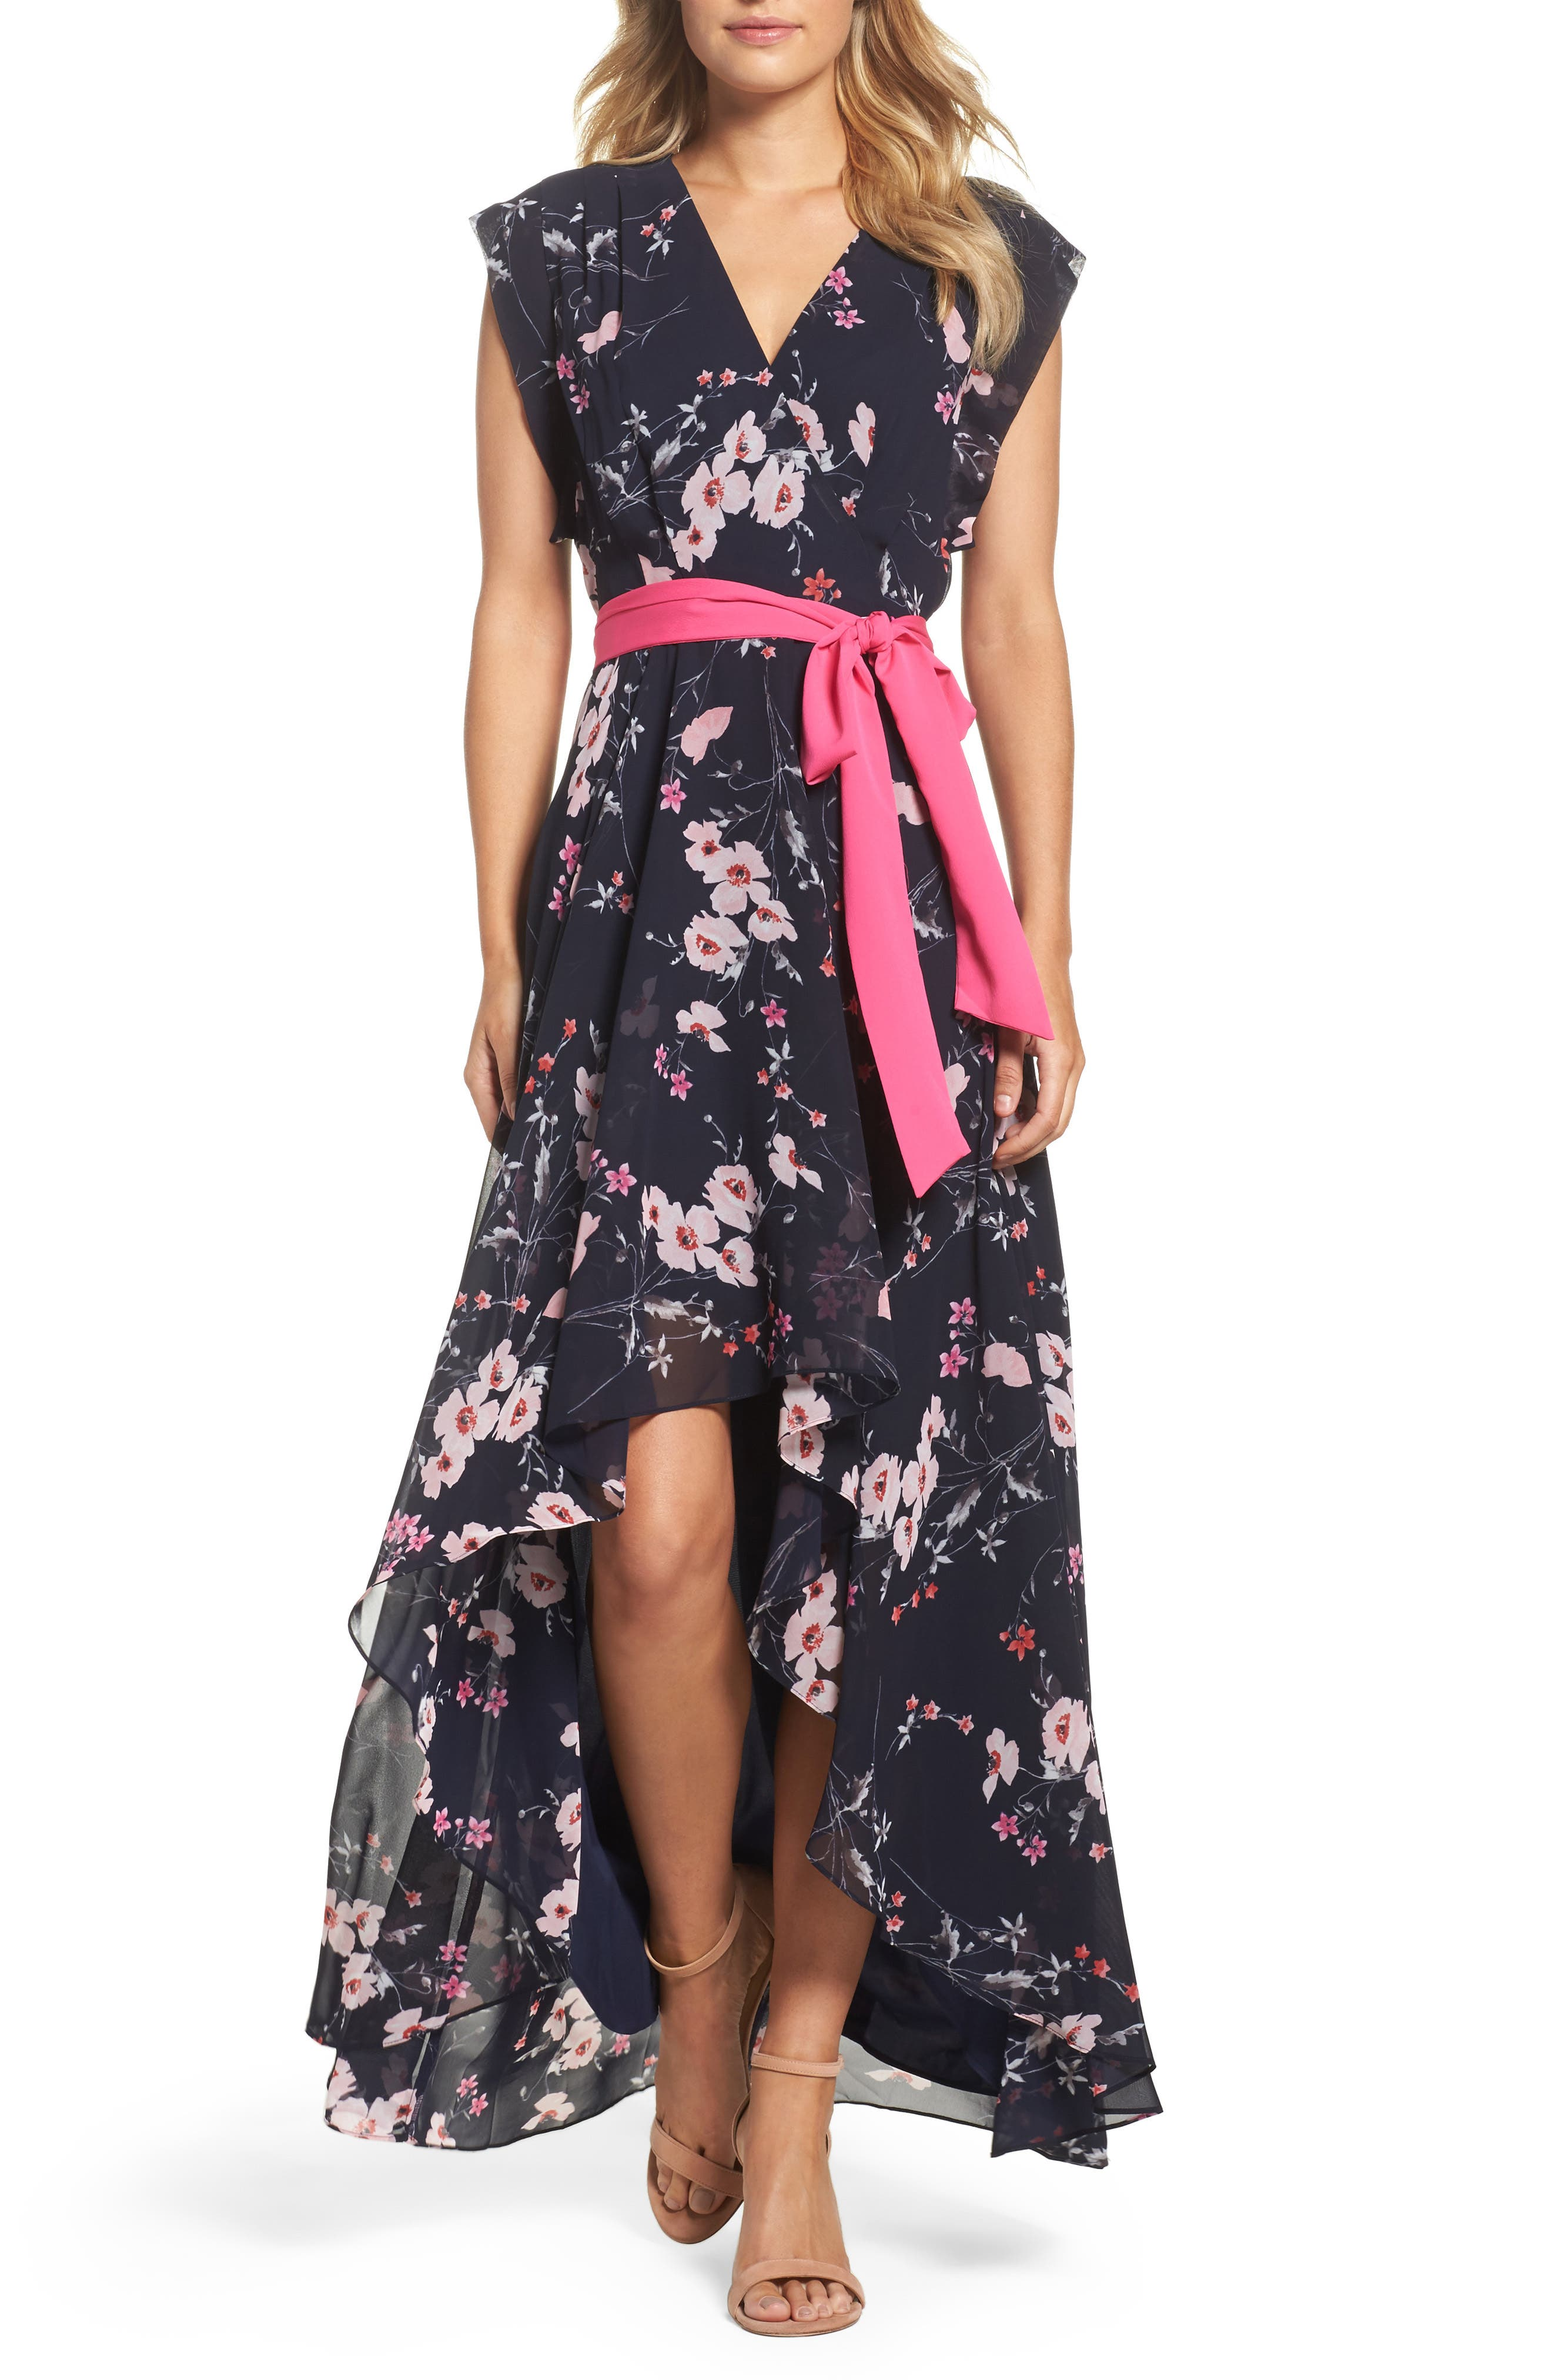 ELIZA J High/Low Floral Faux Wrap Dress, Main, color, NAVY/ PINK